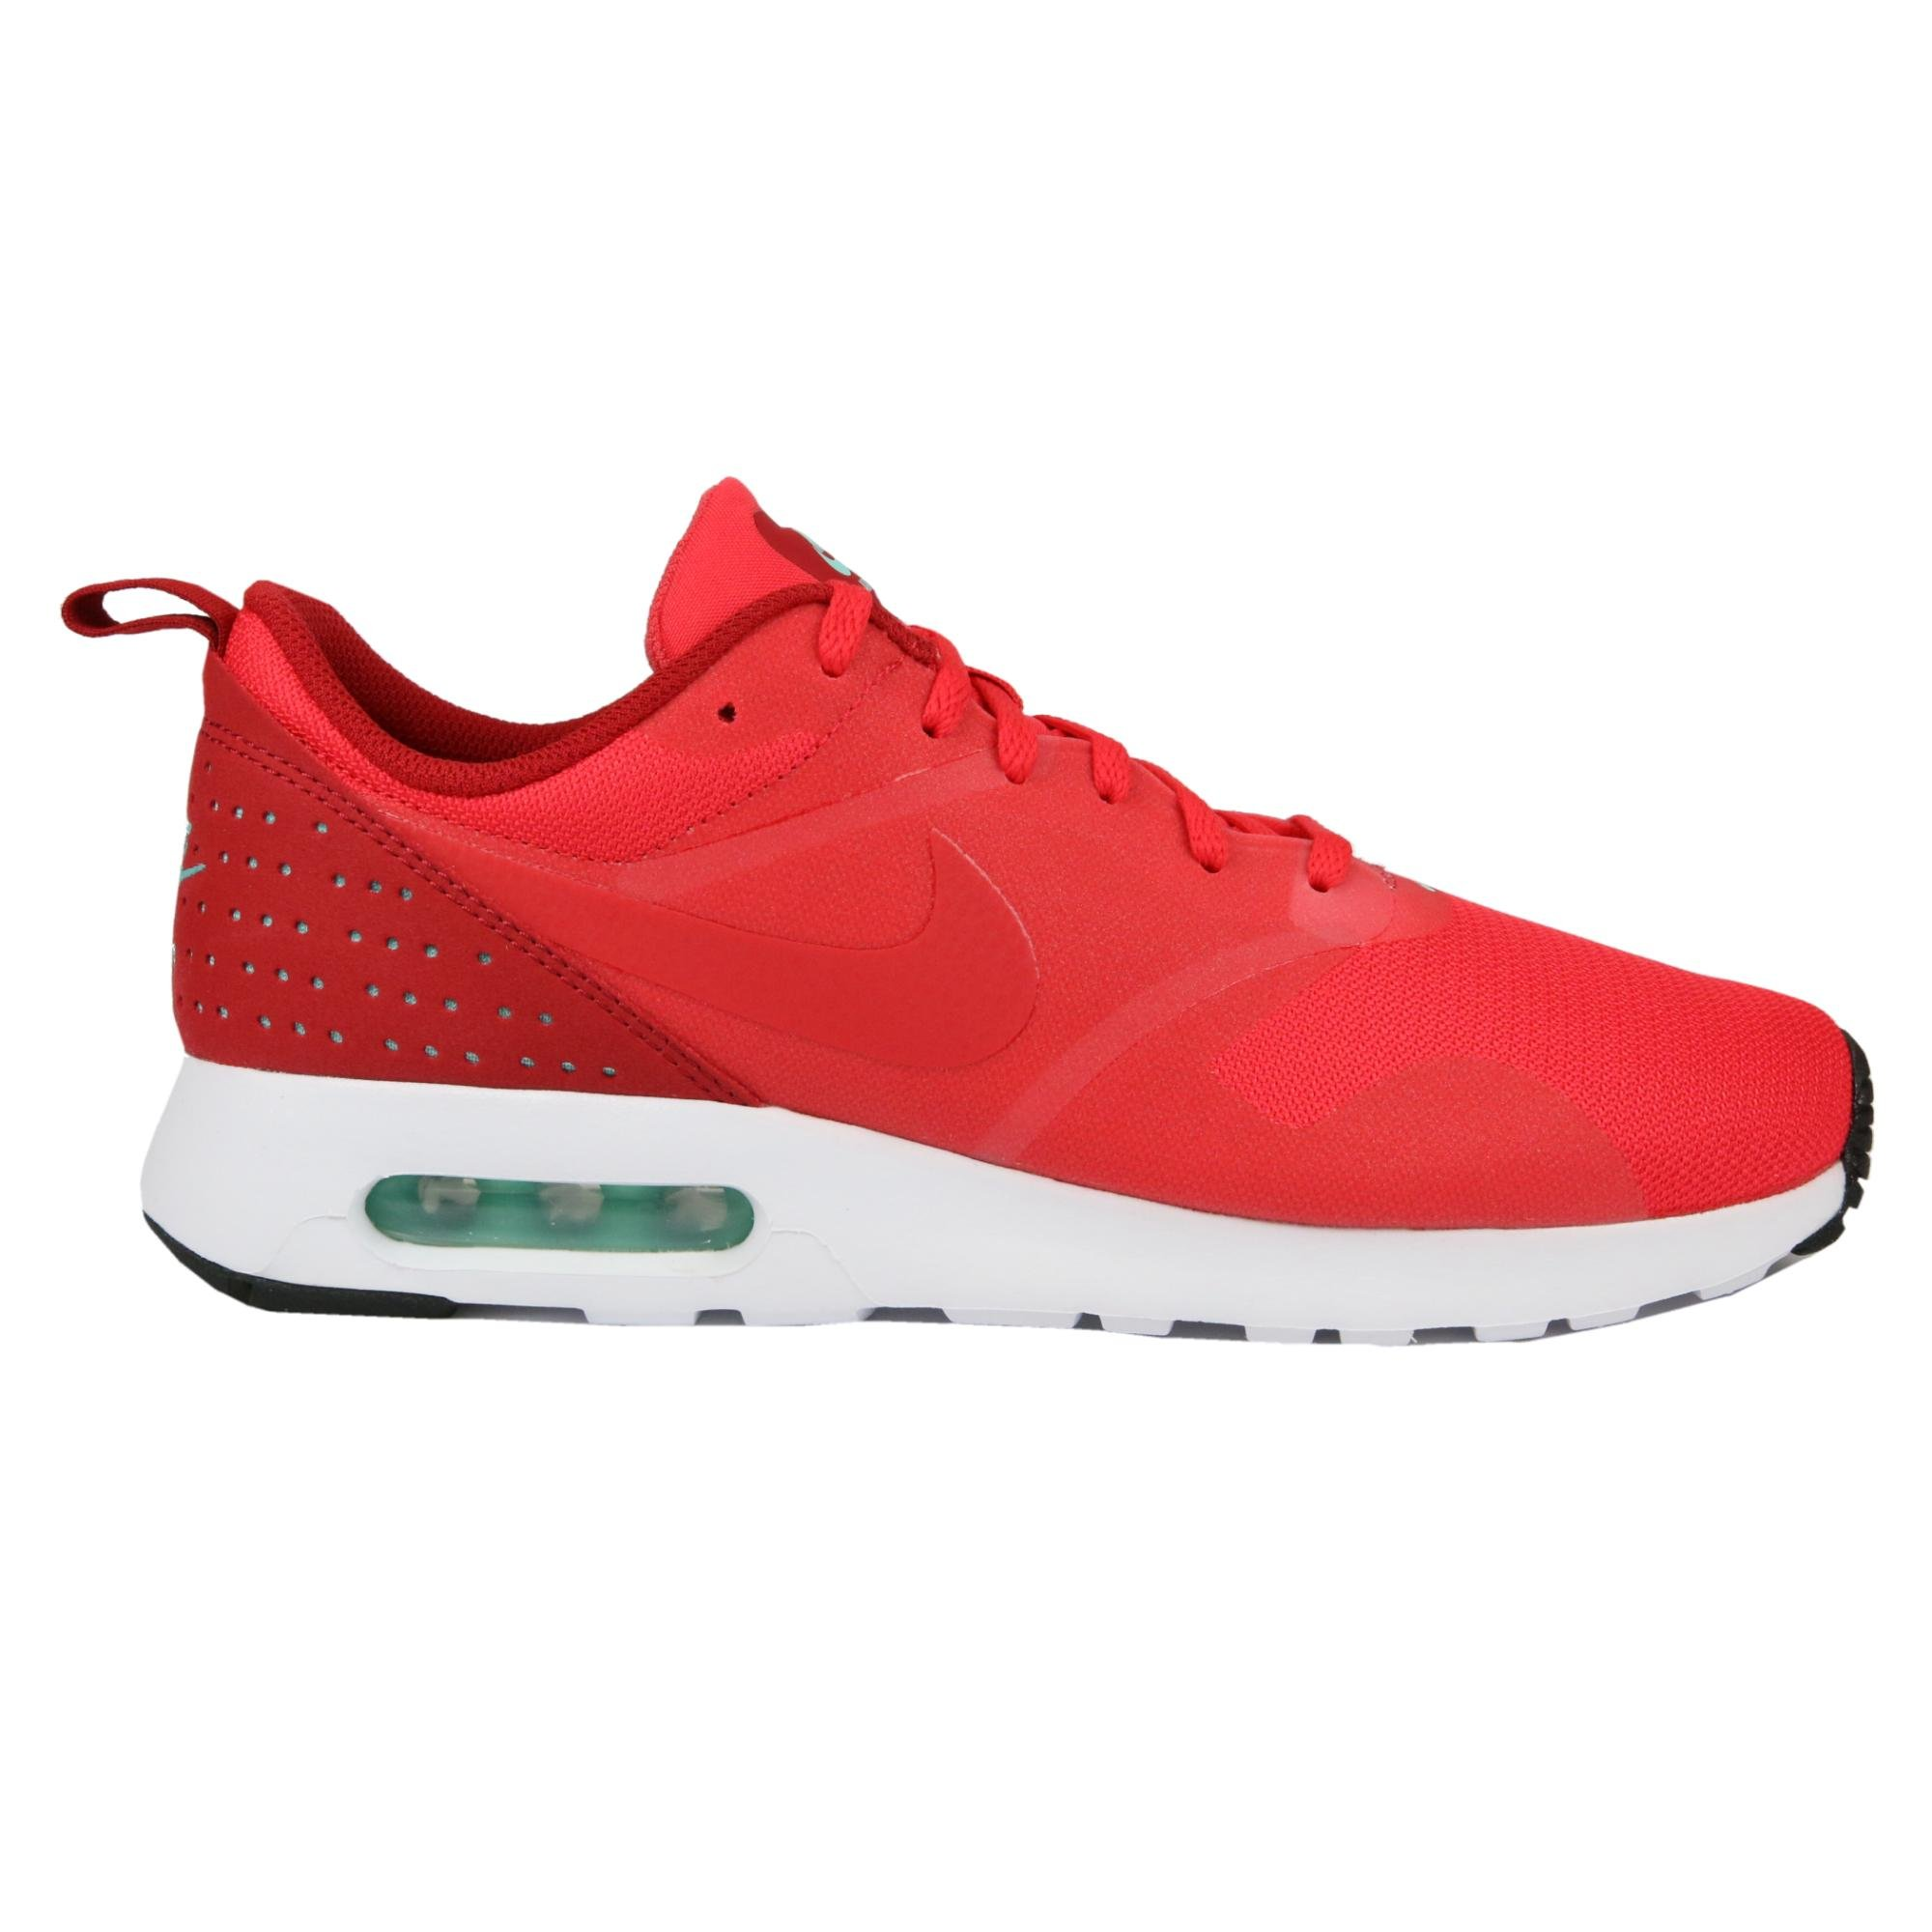 new arrival ff036 445ee Galleon - NIKE Men s Air Max Tavas, Action RED Action RED-Gym RED-White,  10.5 M US